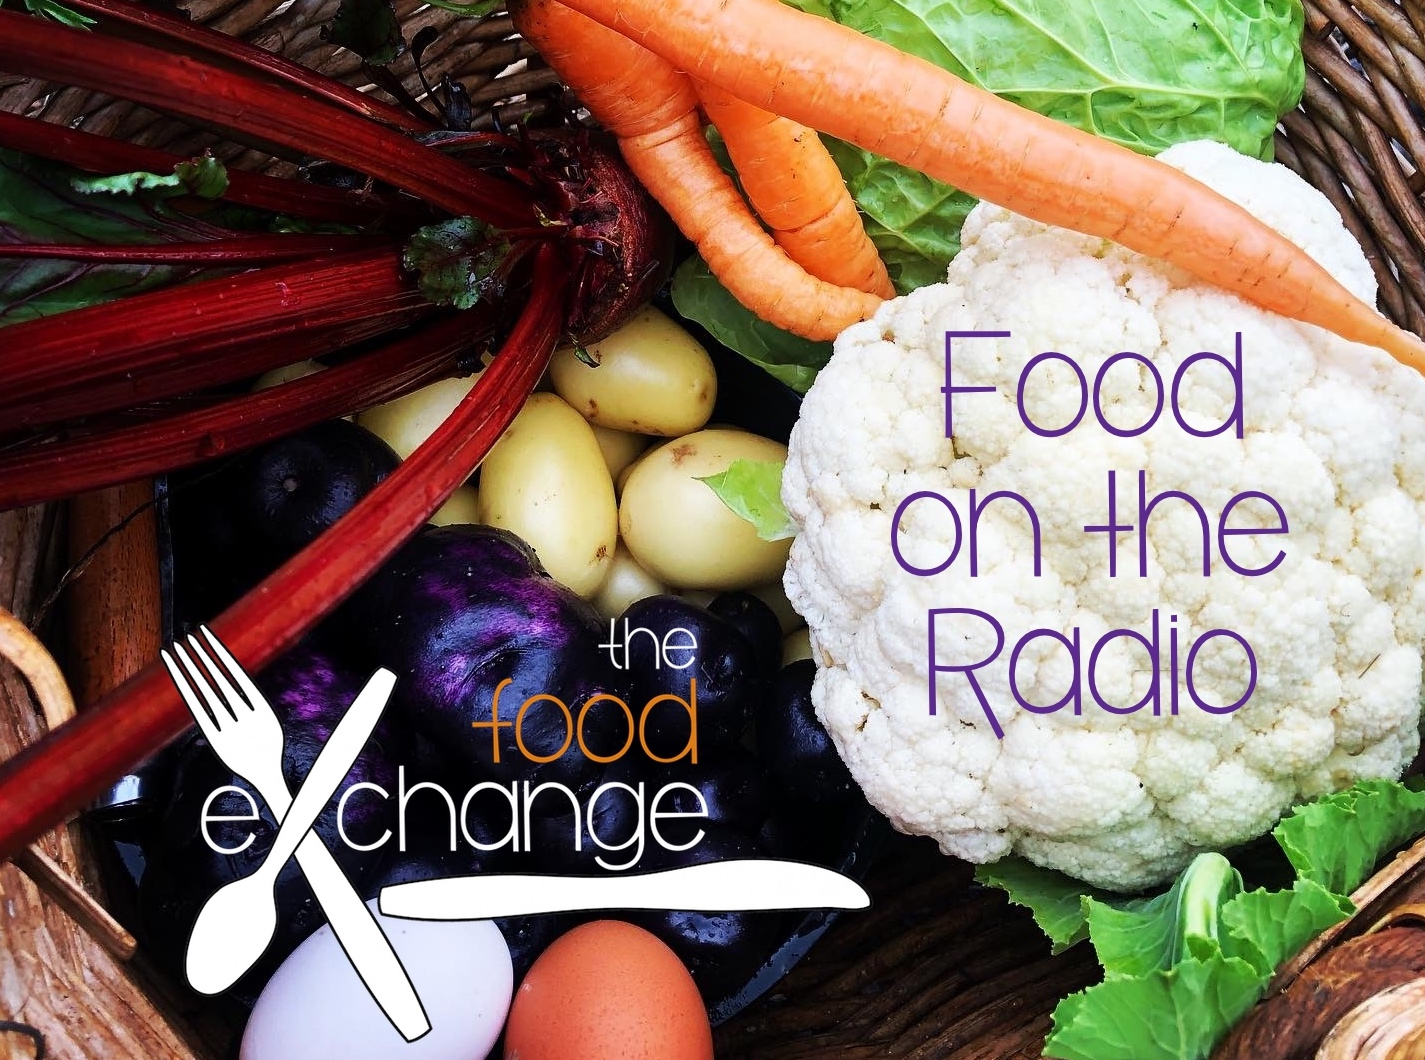 the food eXchange (repeat) with Cynthia Lim on Seymour FM